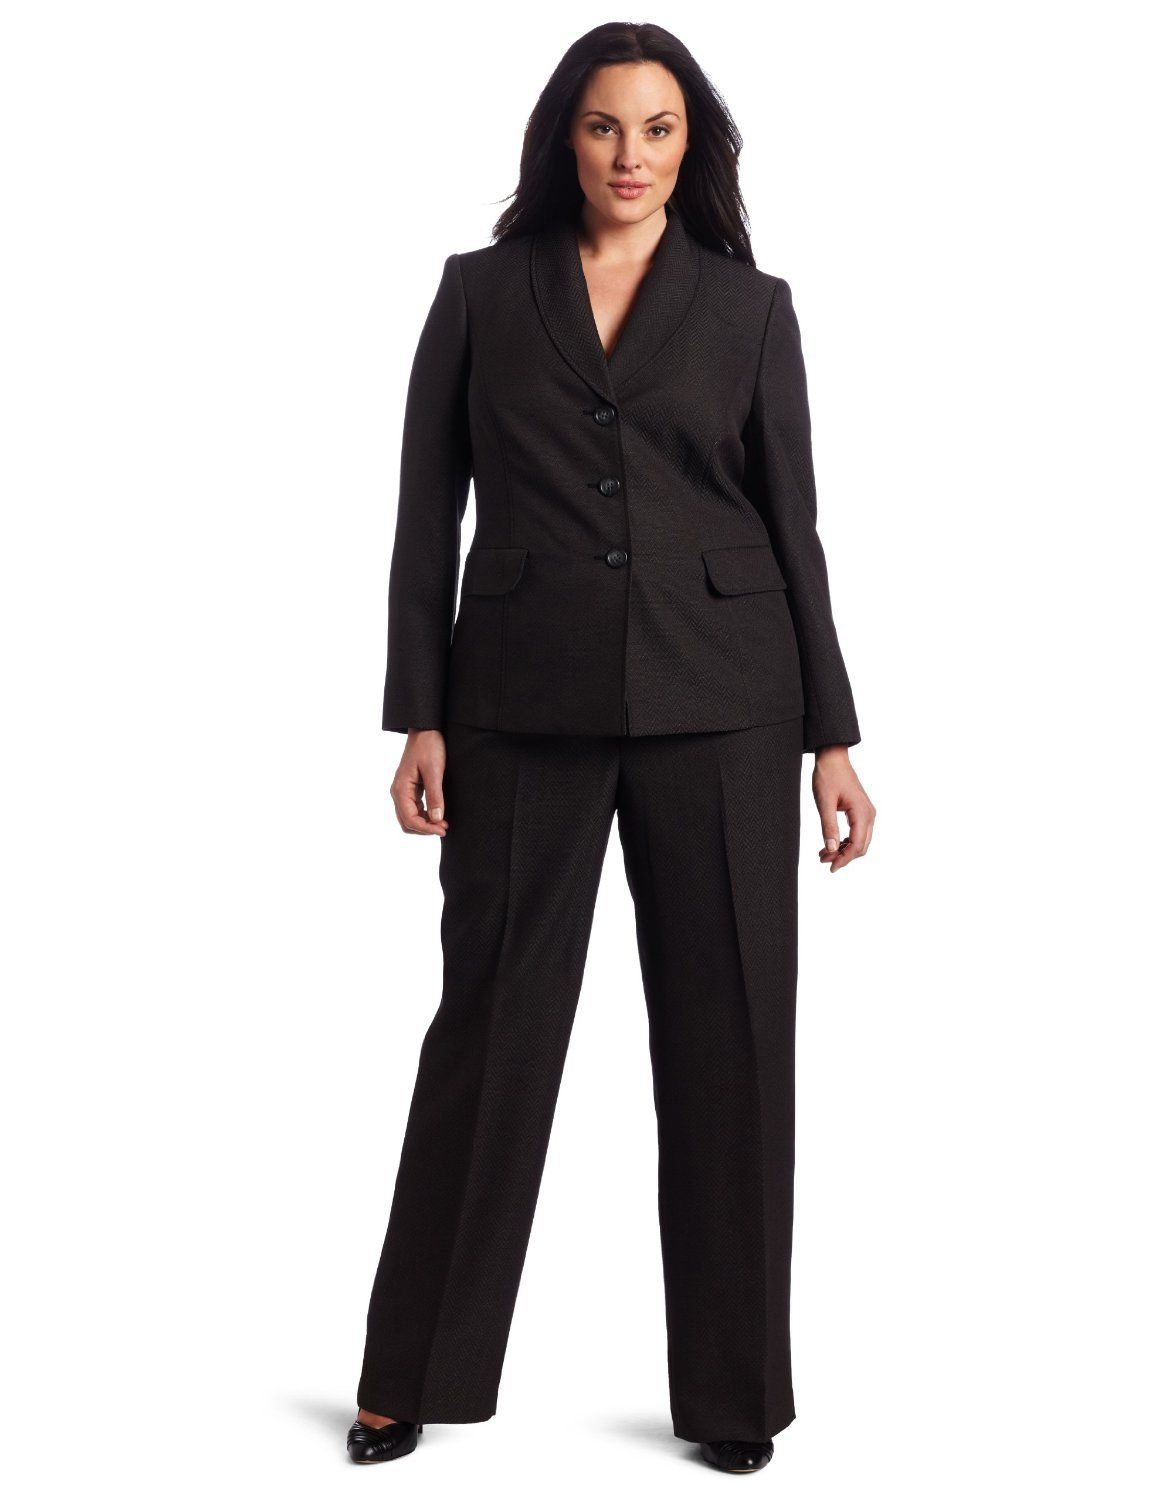 Innovative Formal Pants Outfit For Women | Www.pixshark.com - Images Galleries With A Bite!